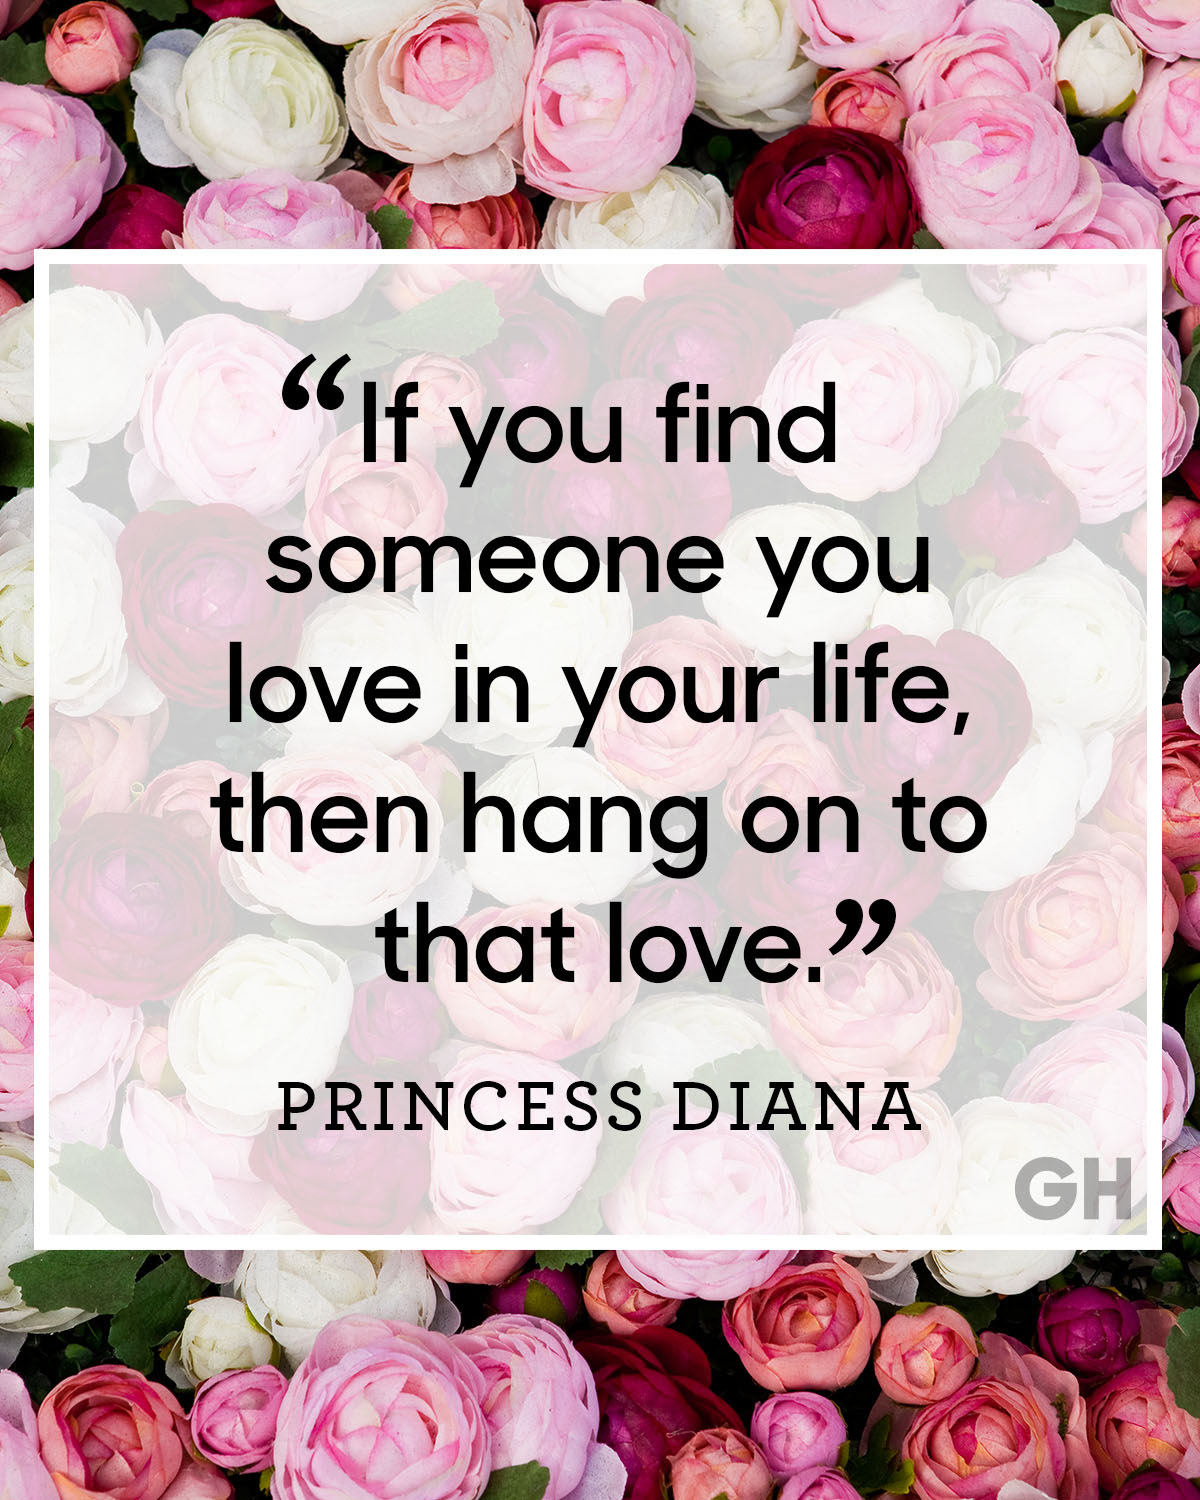 gh quotes 0001 princess di copy